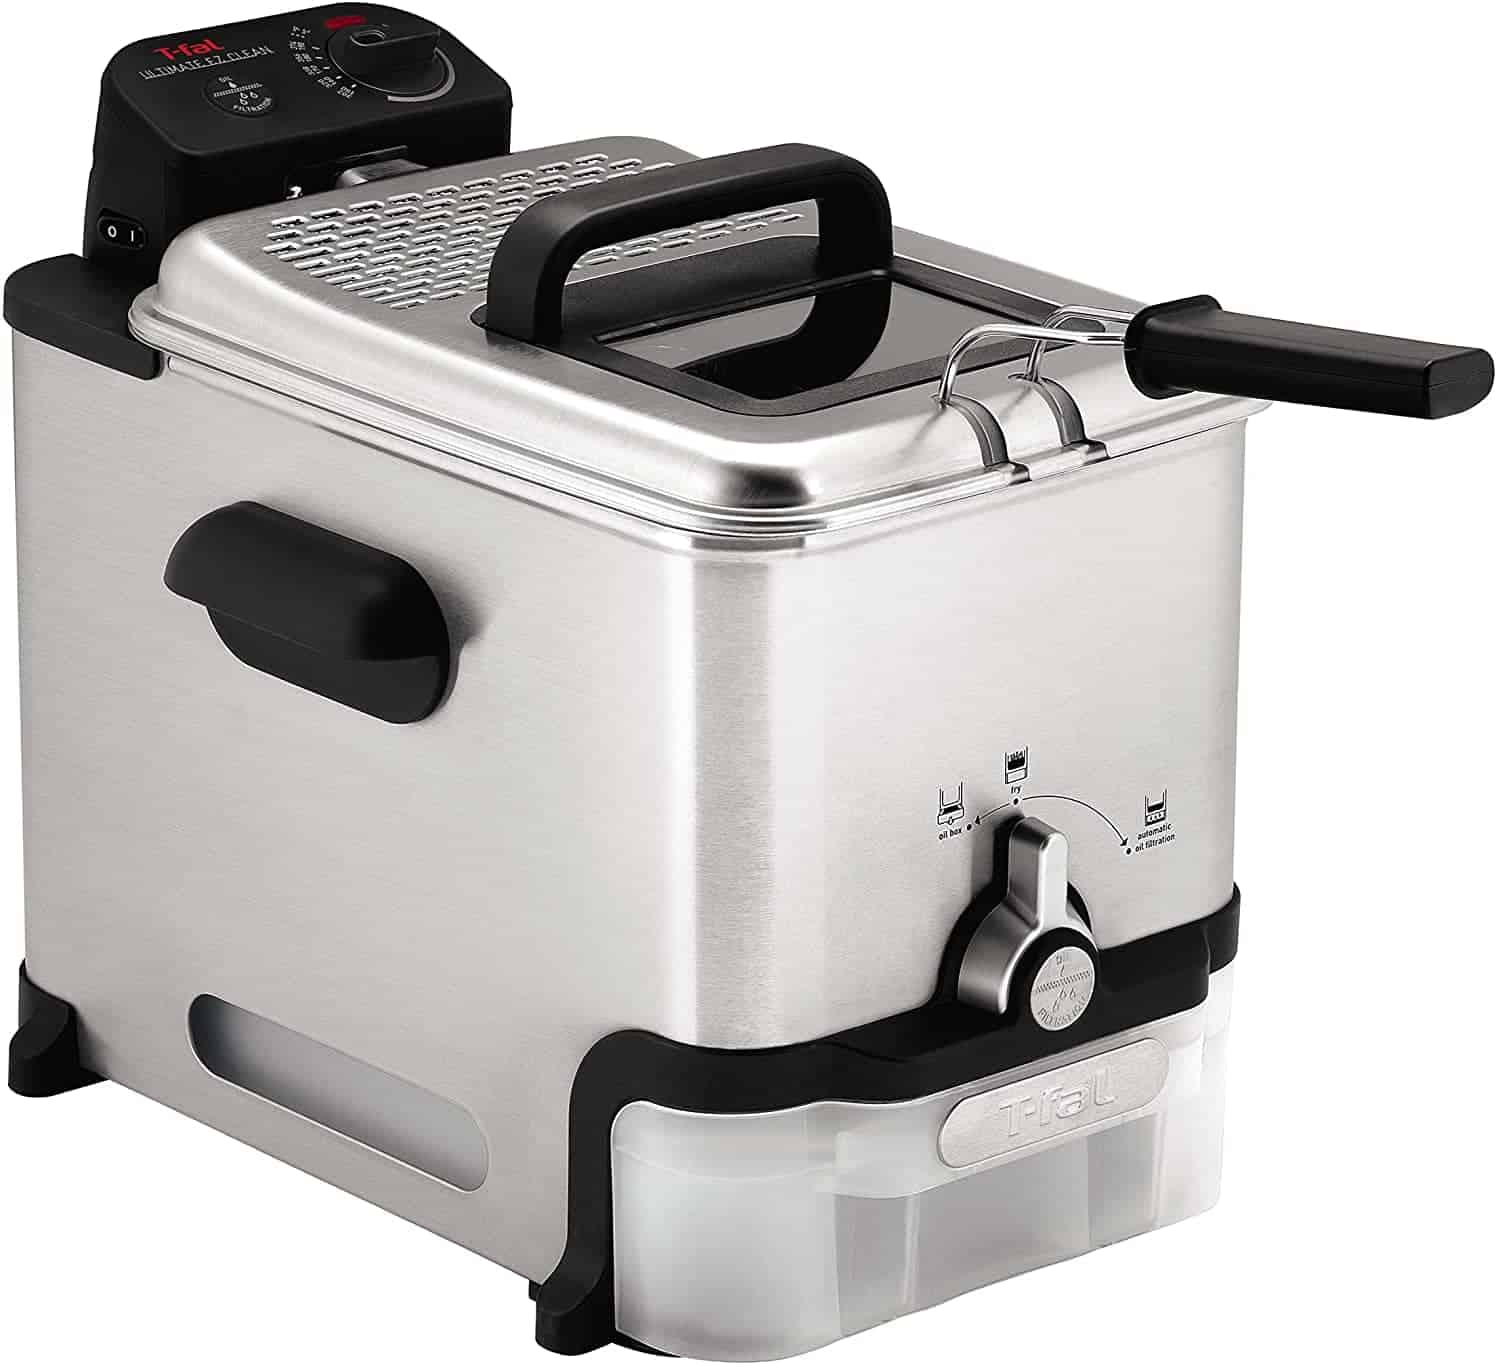 T-Fal Deep Fryer with Oil Filtration